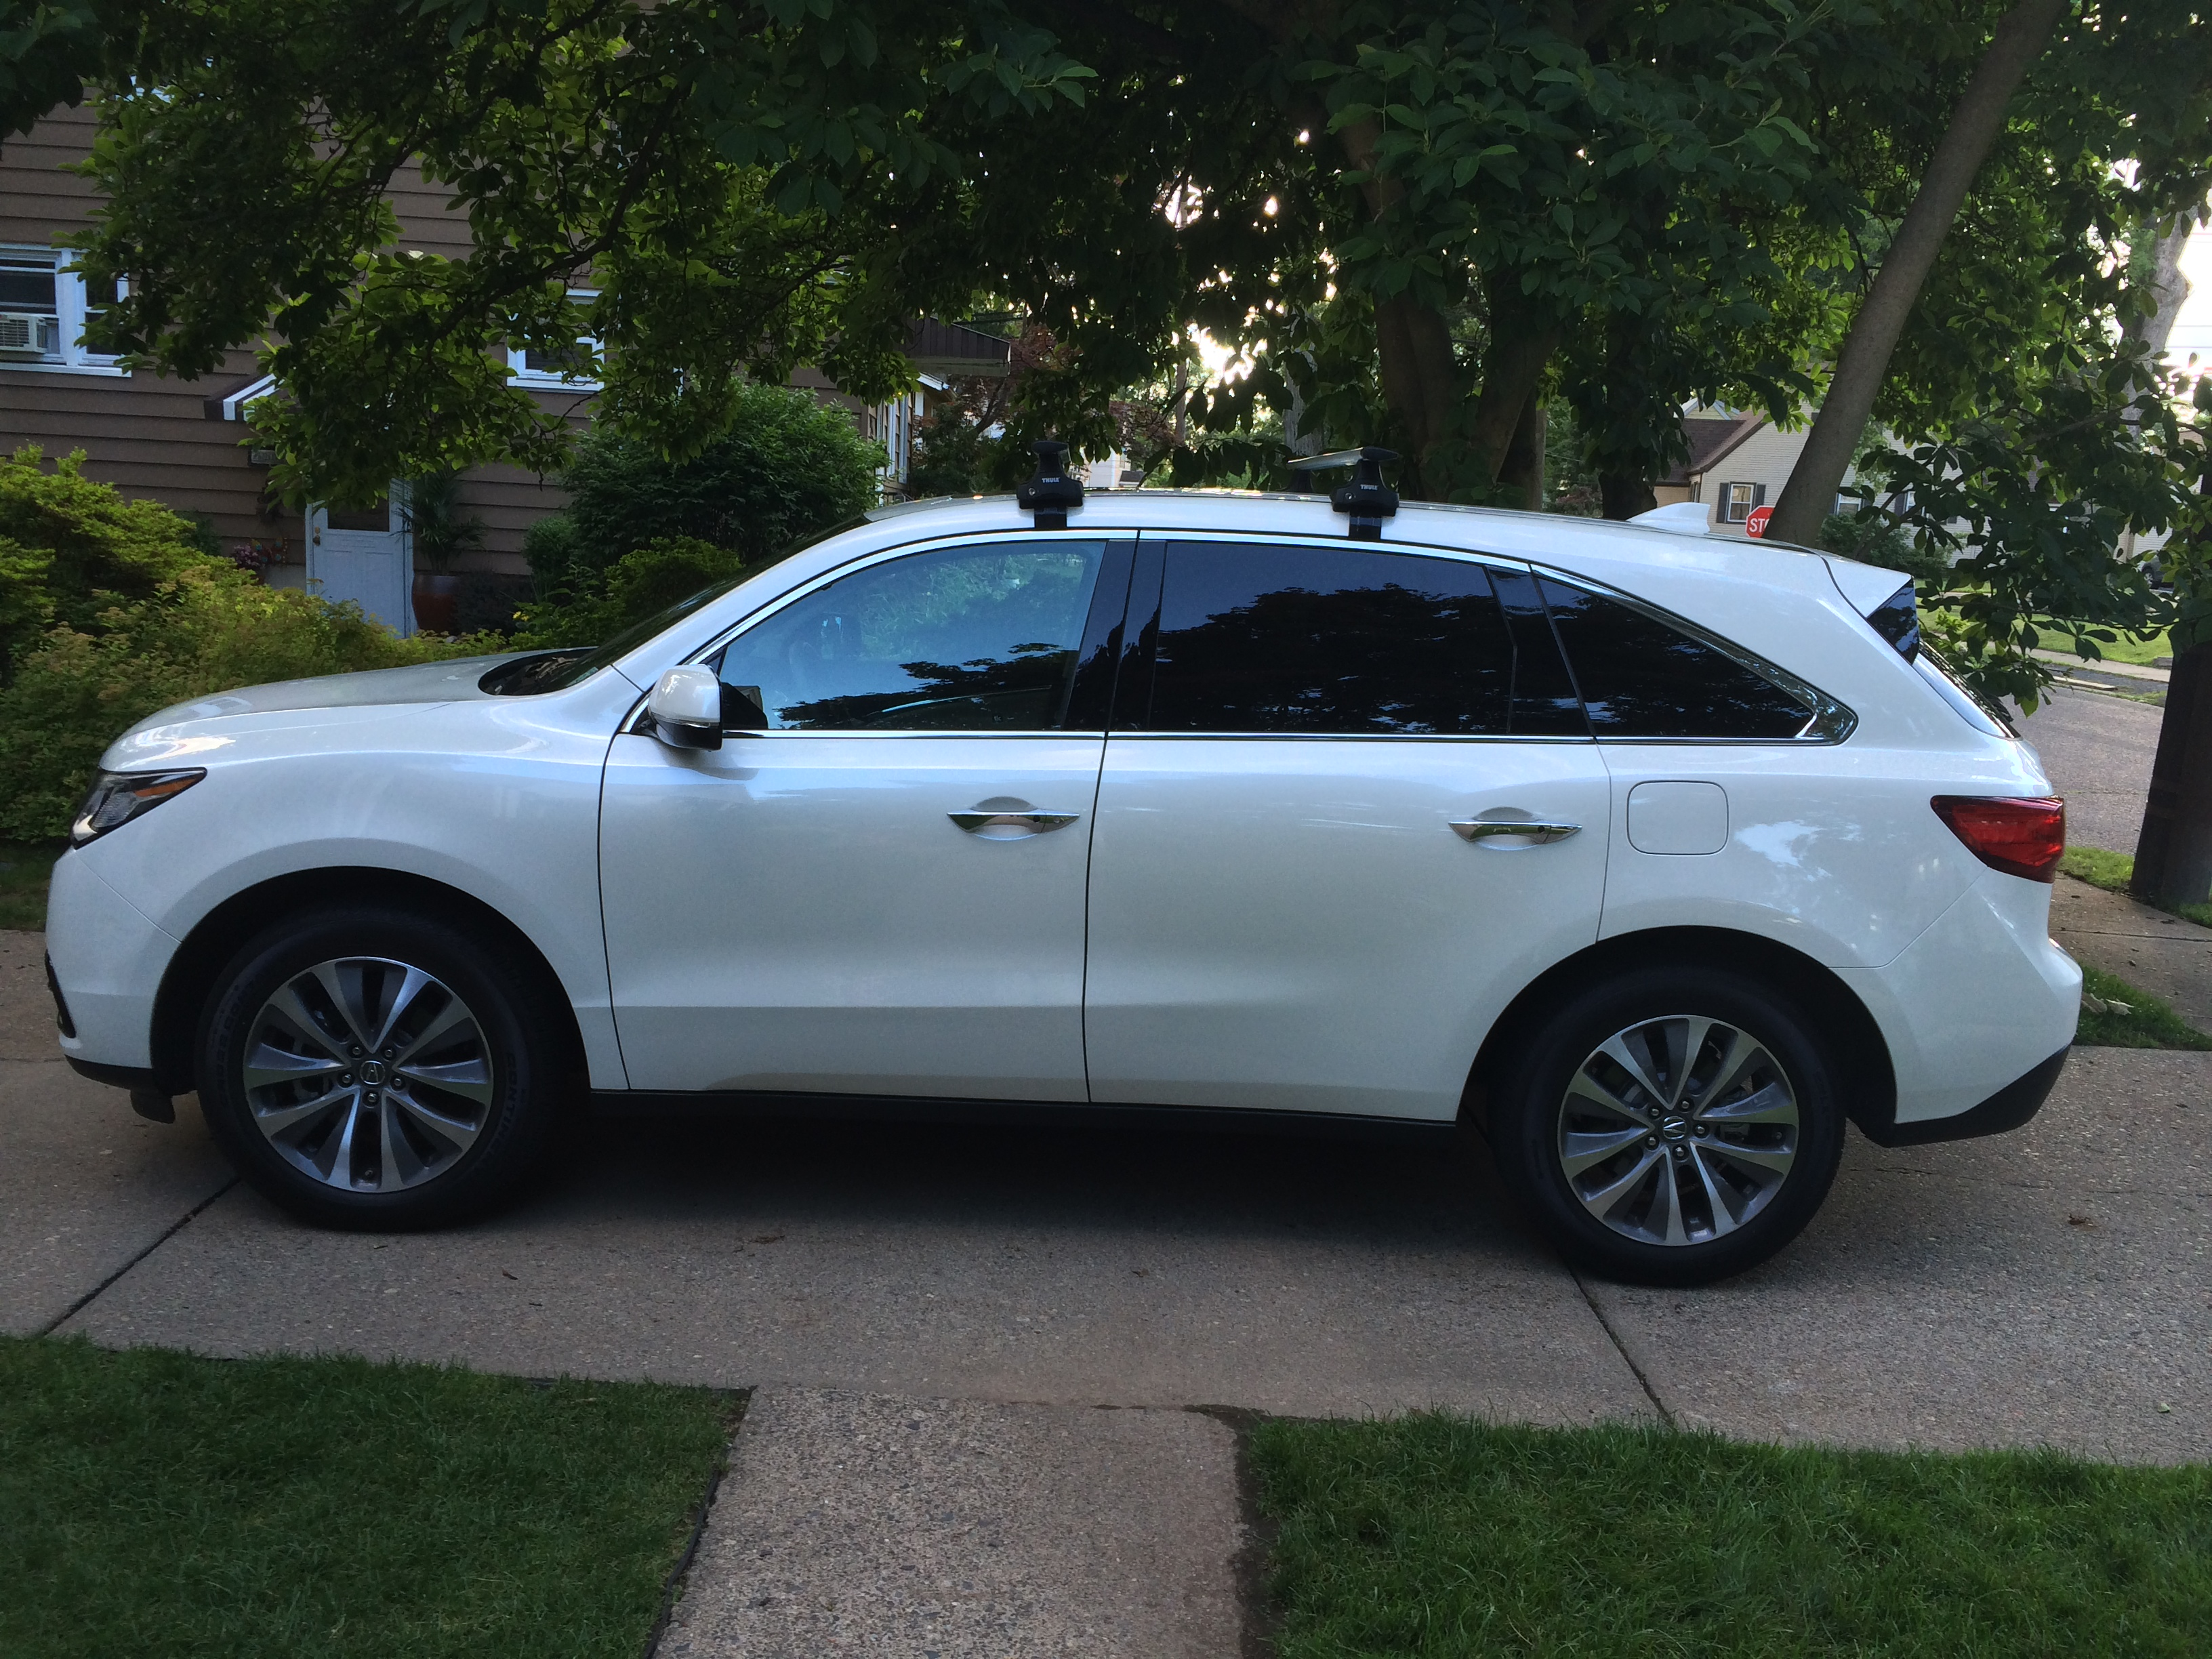 Factory Roof Rack Concerns Page Acura MDX Forum Acura MDX - Acura mdx roof cargo box